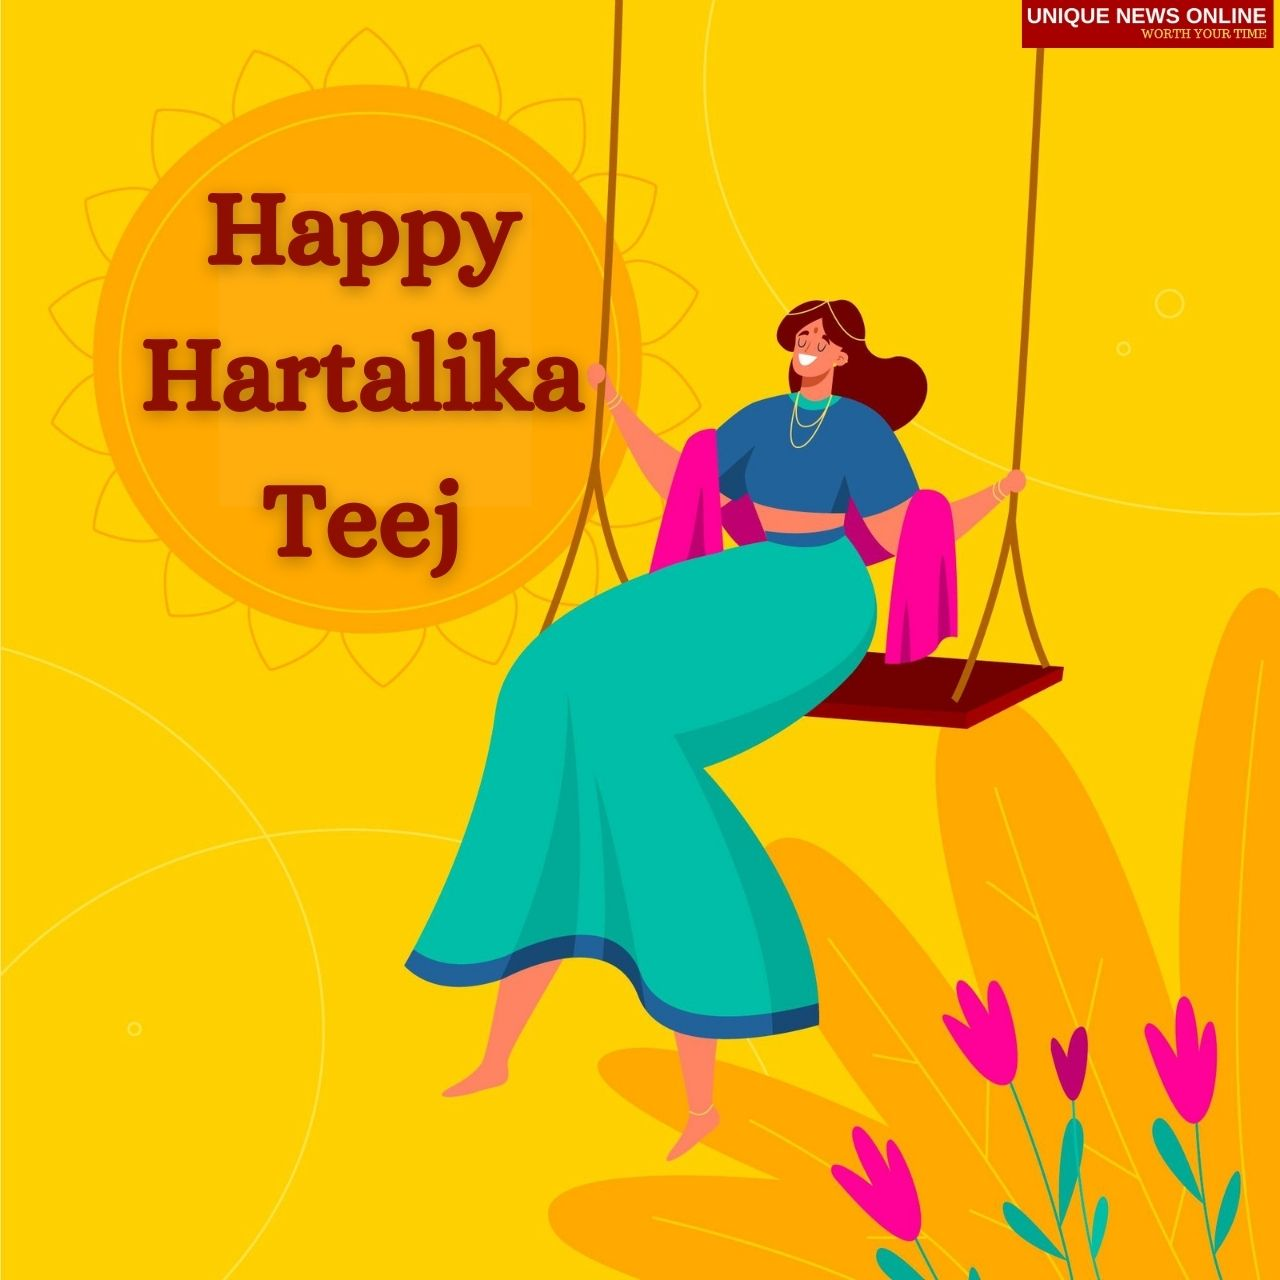 Hartalika Teej 2021 Wishes, Quotes, Greetings, Messages, HD Images, Wallpaper, and Status to Share